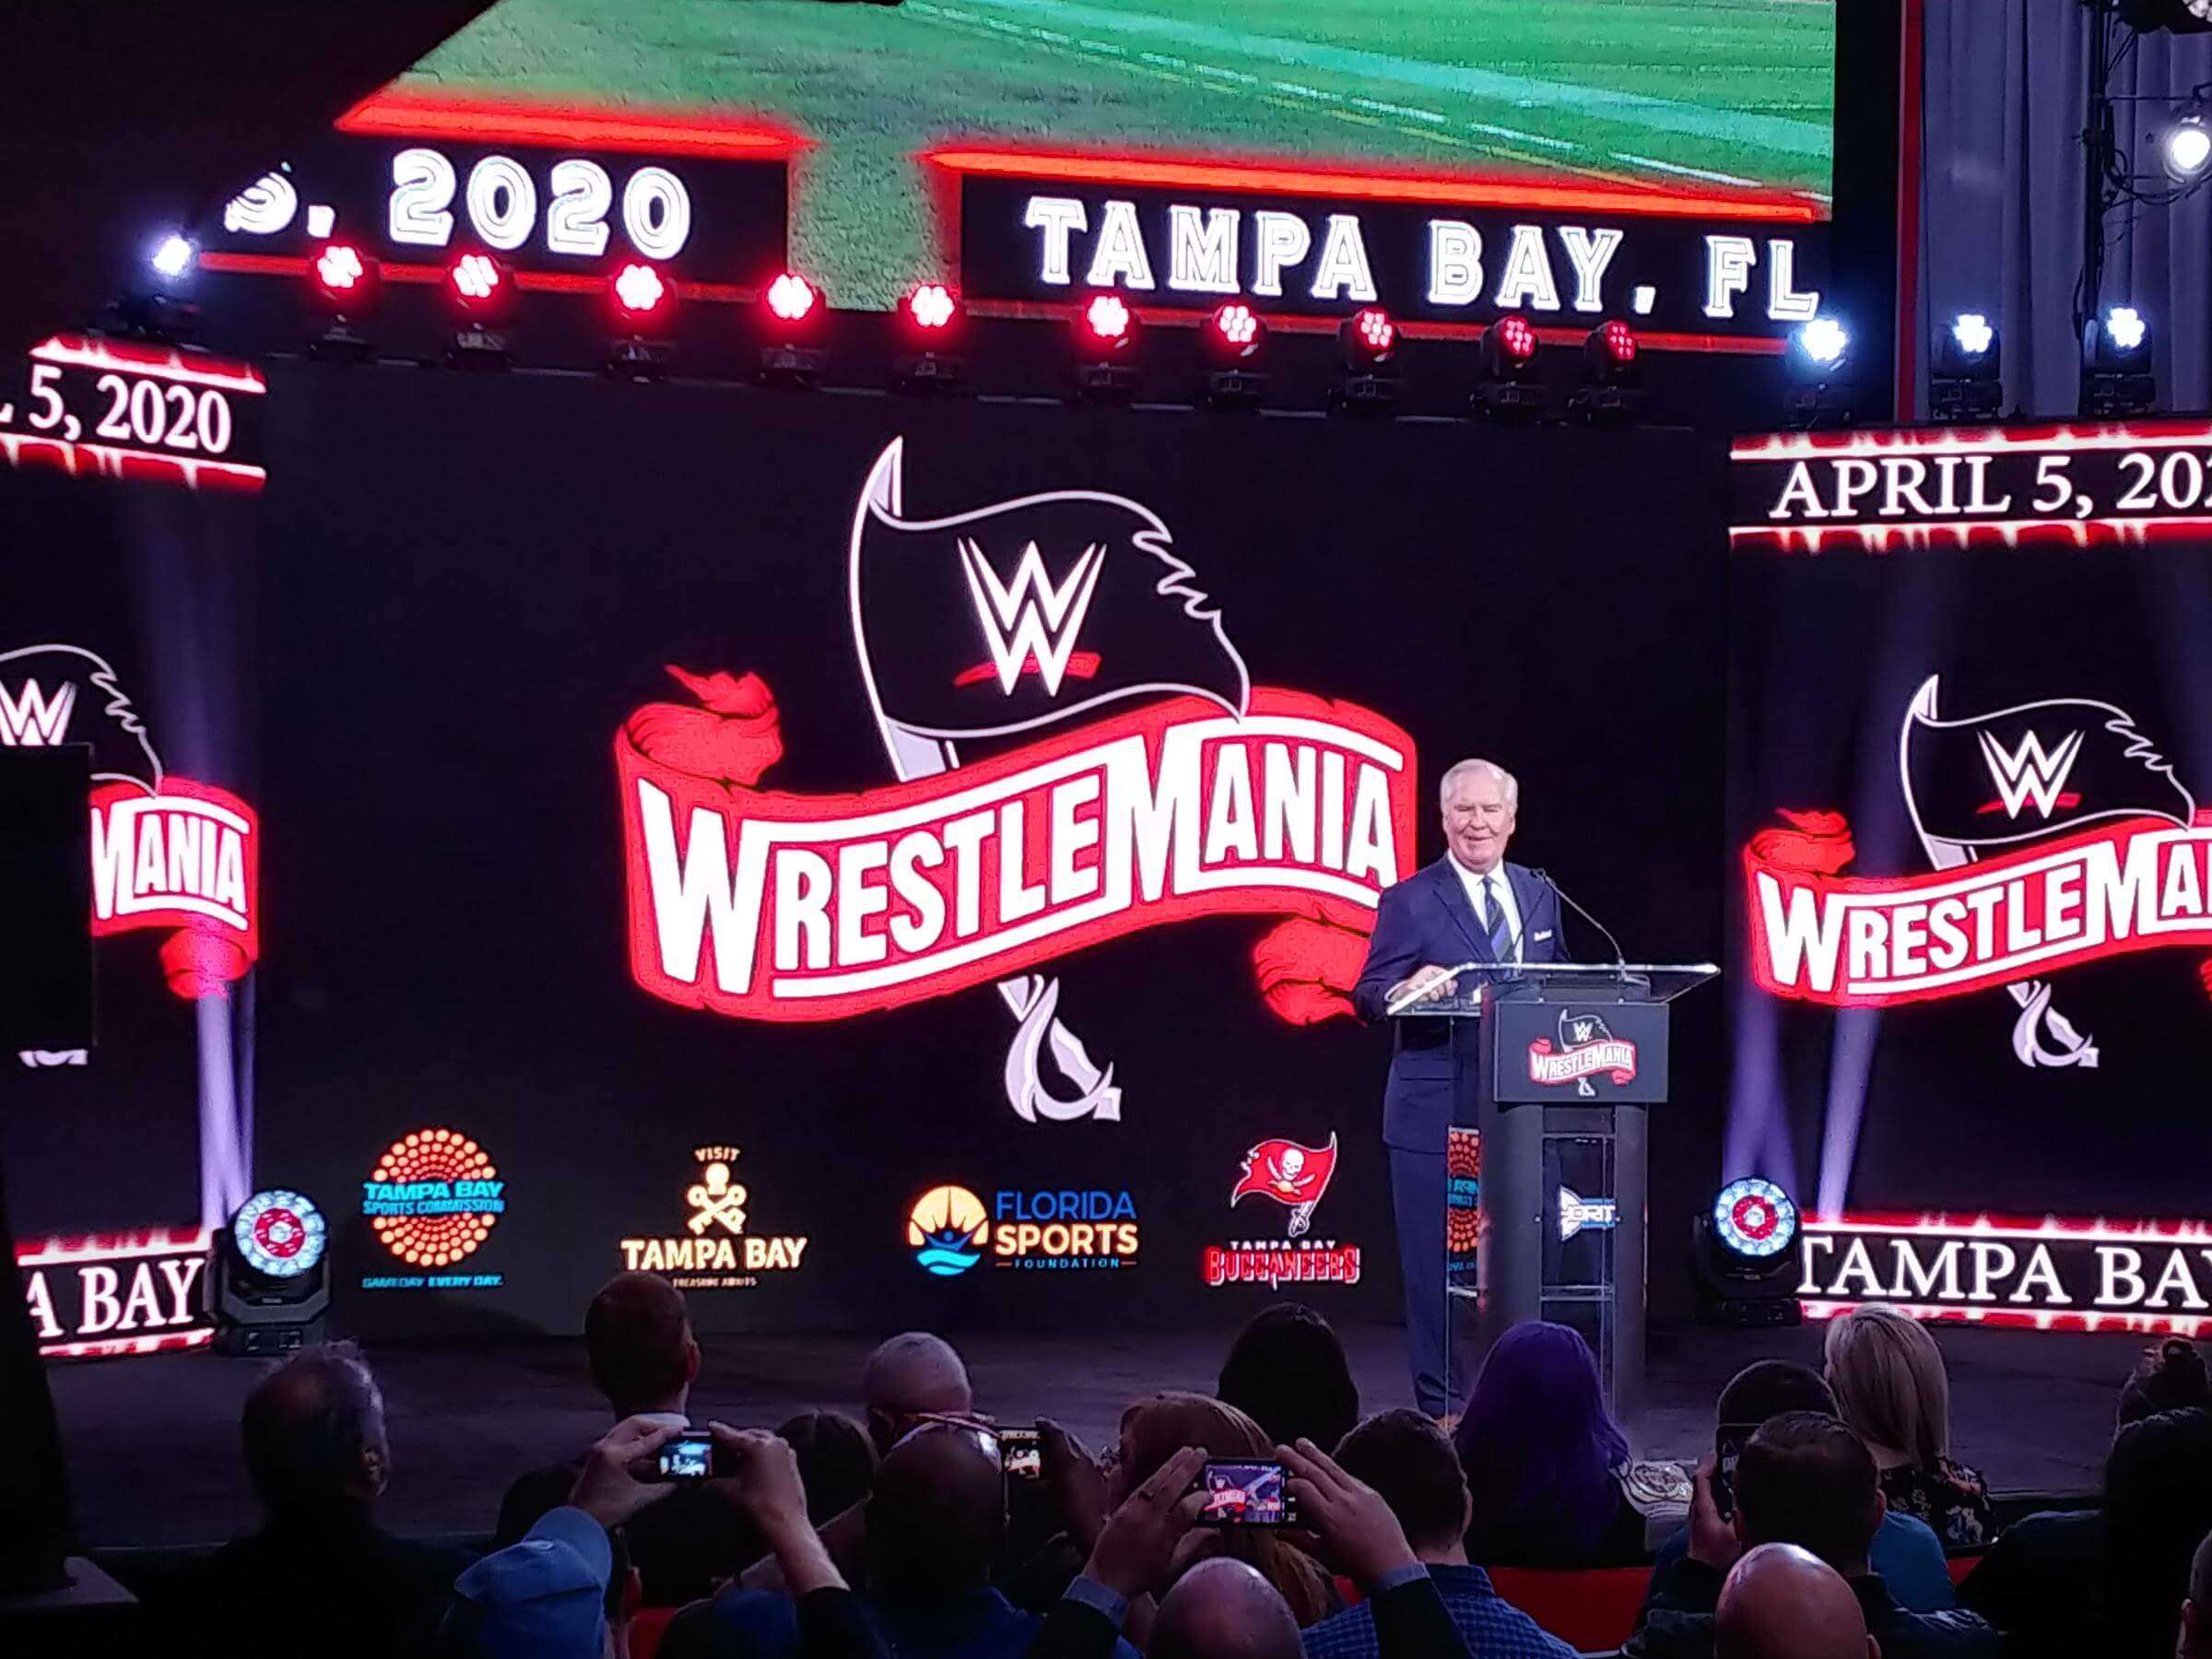 Wrestlemania is WWE's biggest event of the year